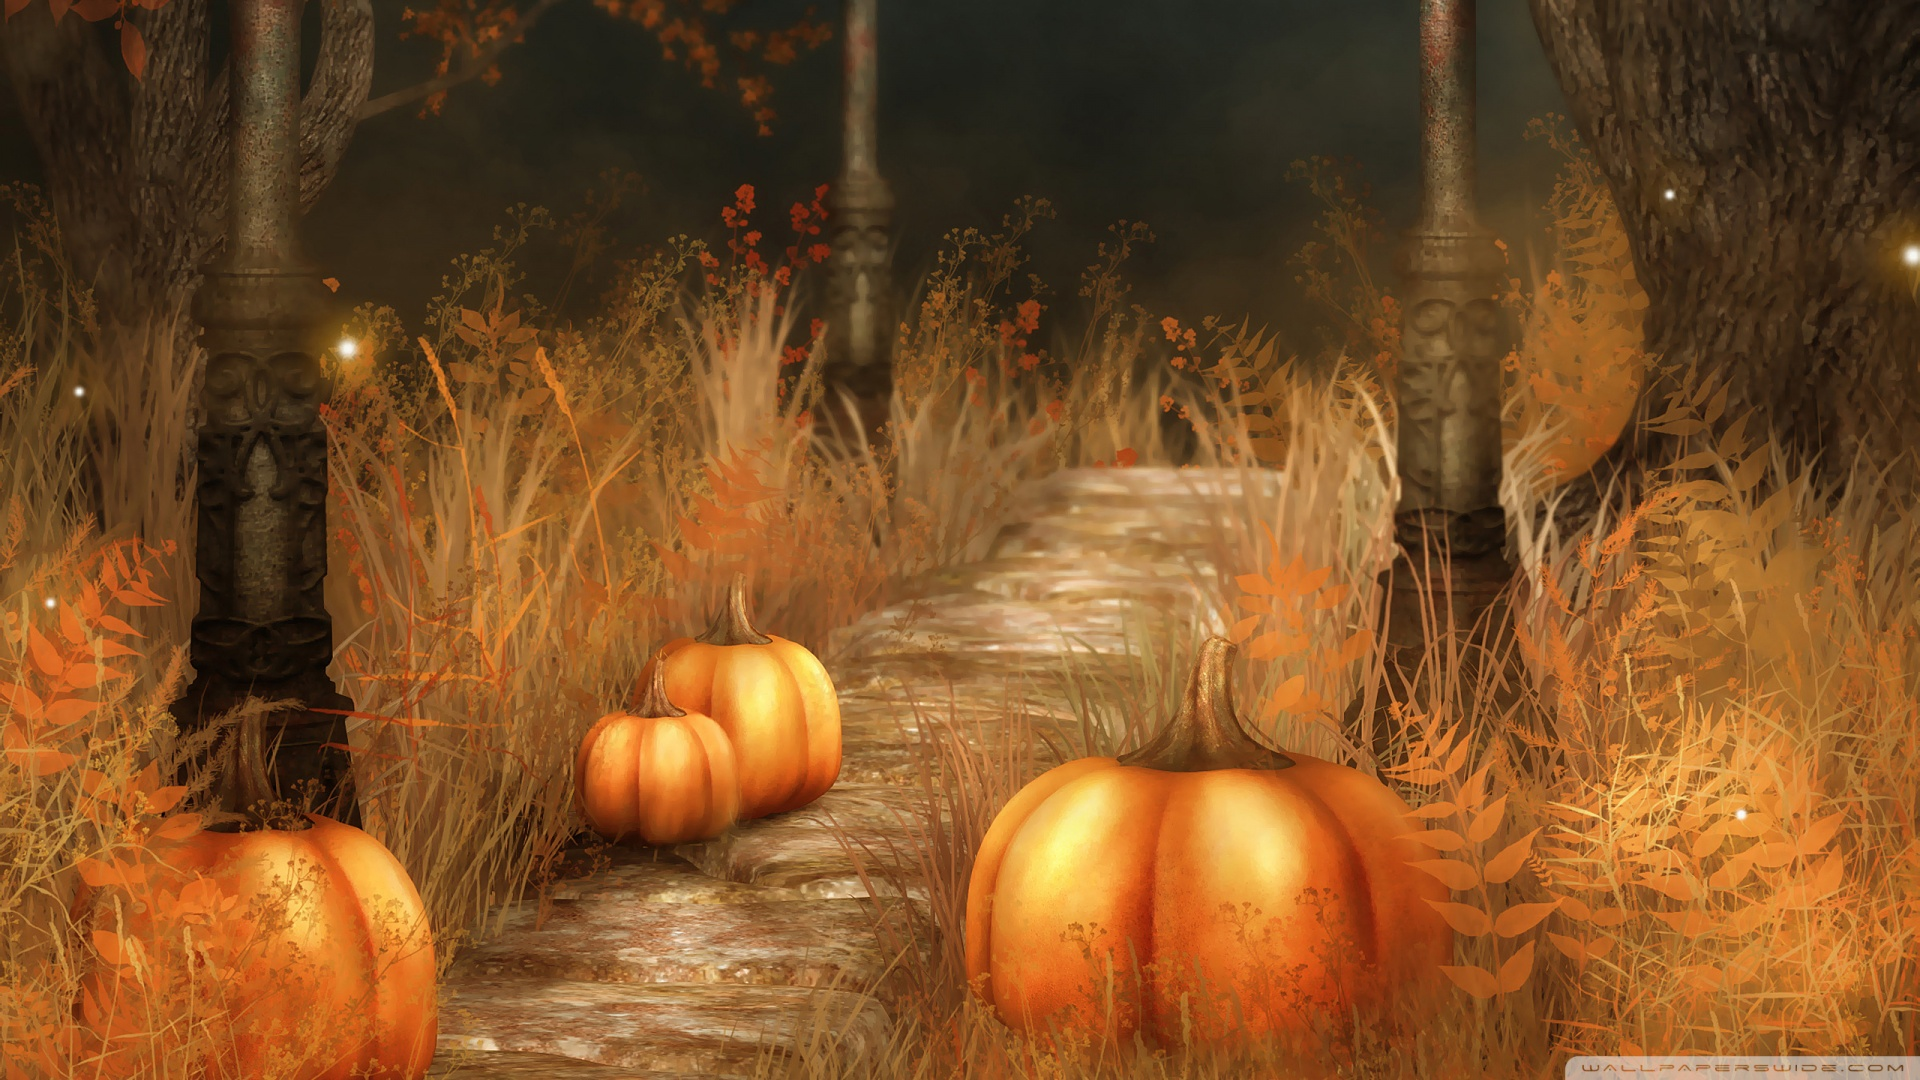 Halloween wallpaper free downloads sf wallpaper cute fall pumpkins wallpaper pumpkins halloween wallpaper free voltagebd